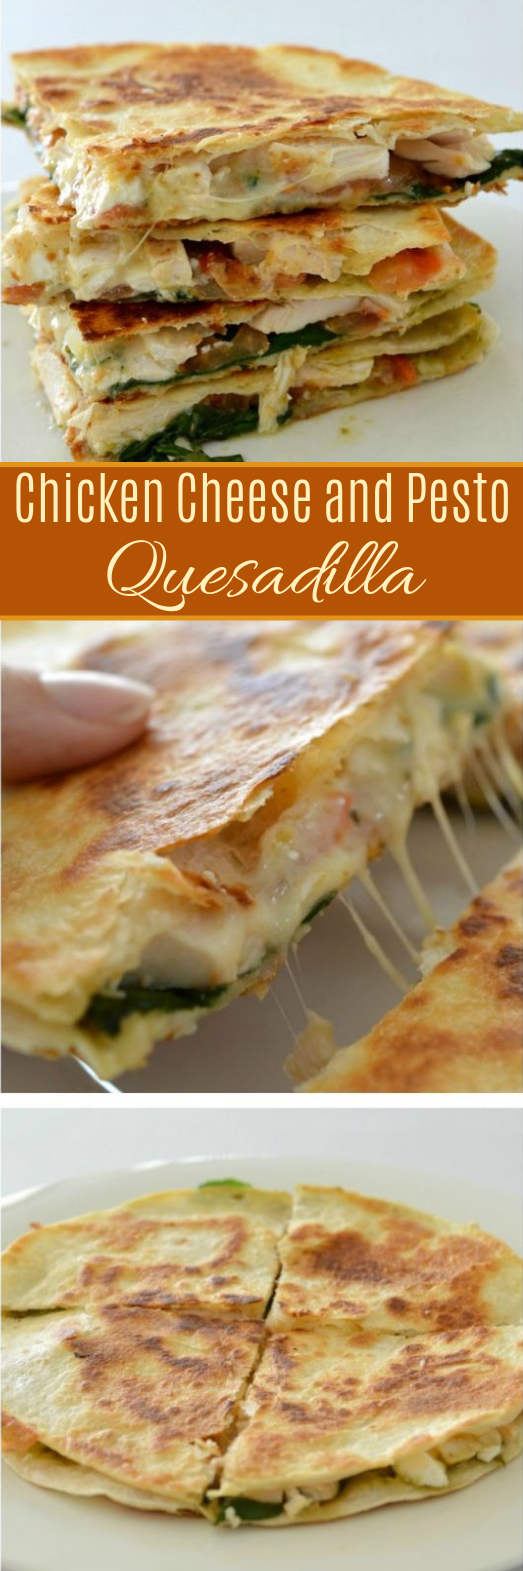 Chicken Cheese and Pesto Quesadilla #lunch #mexicanfood